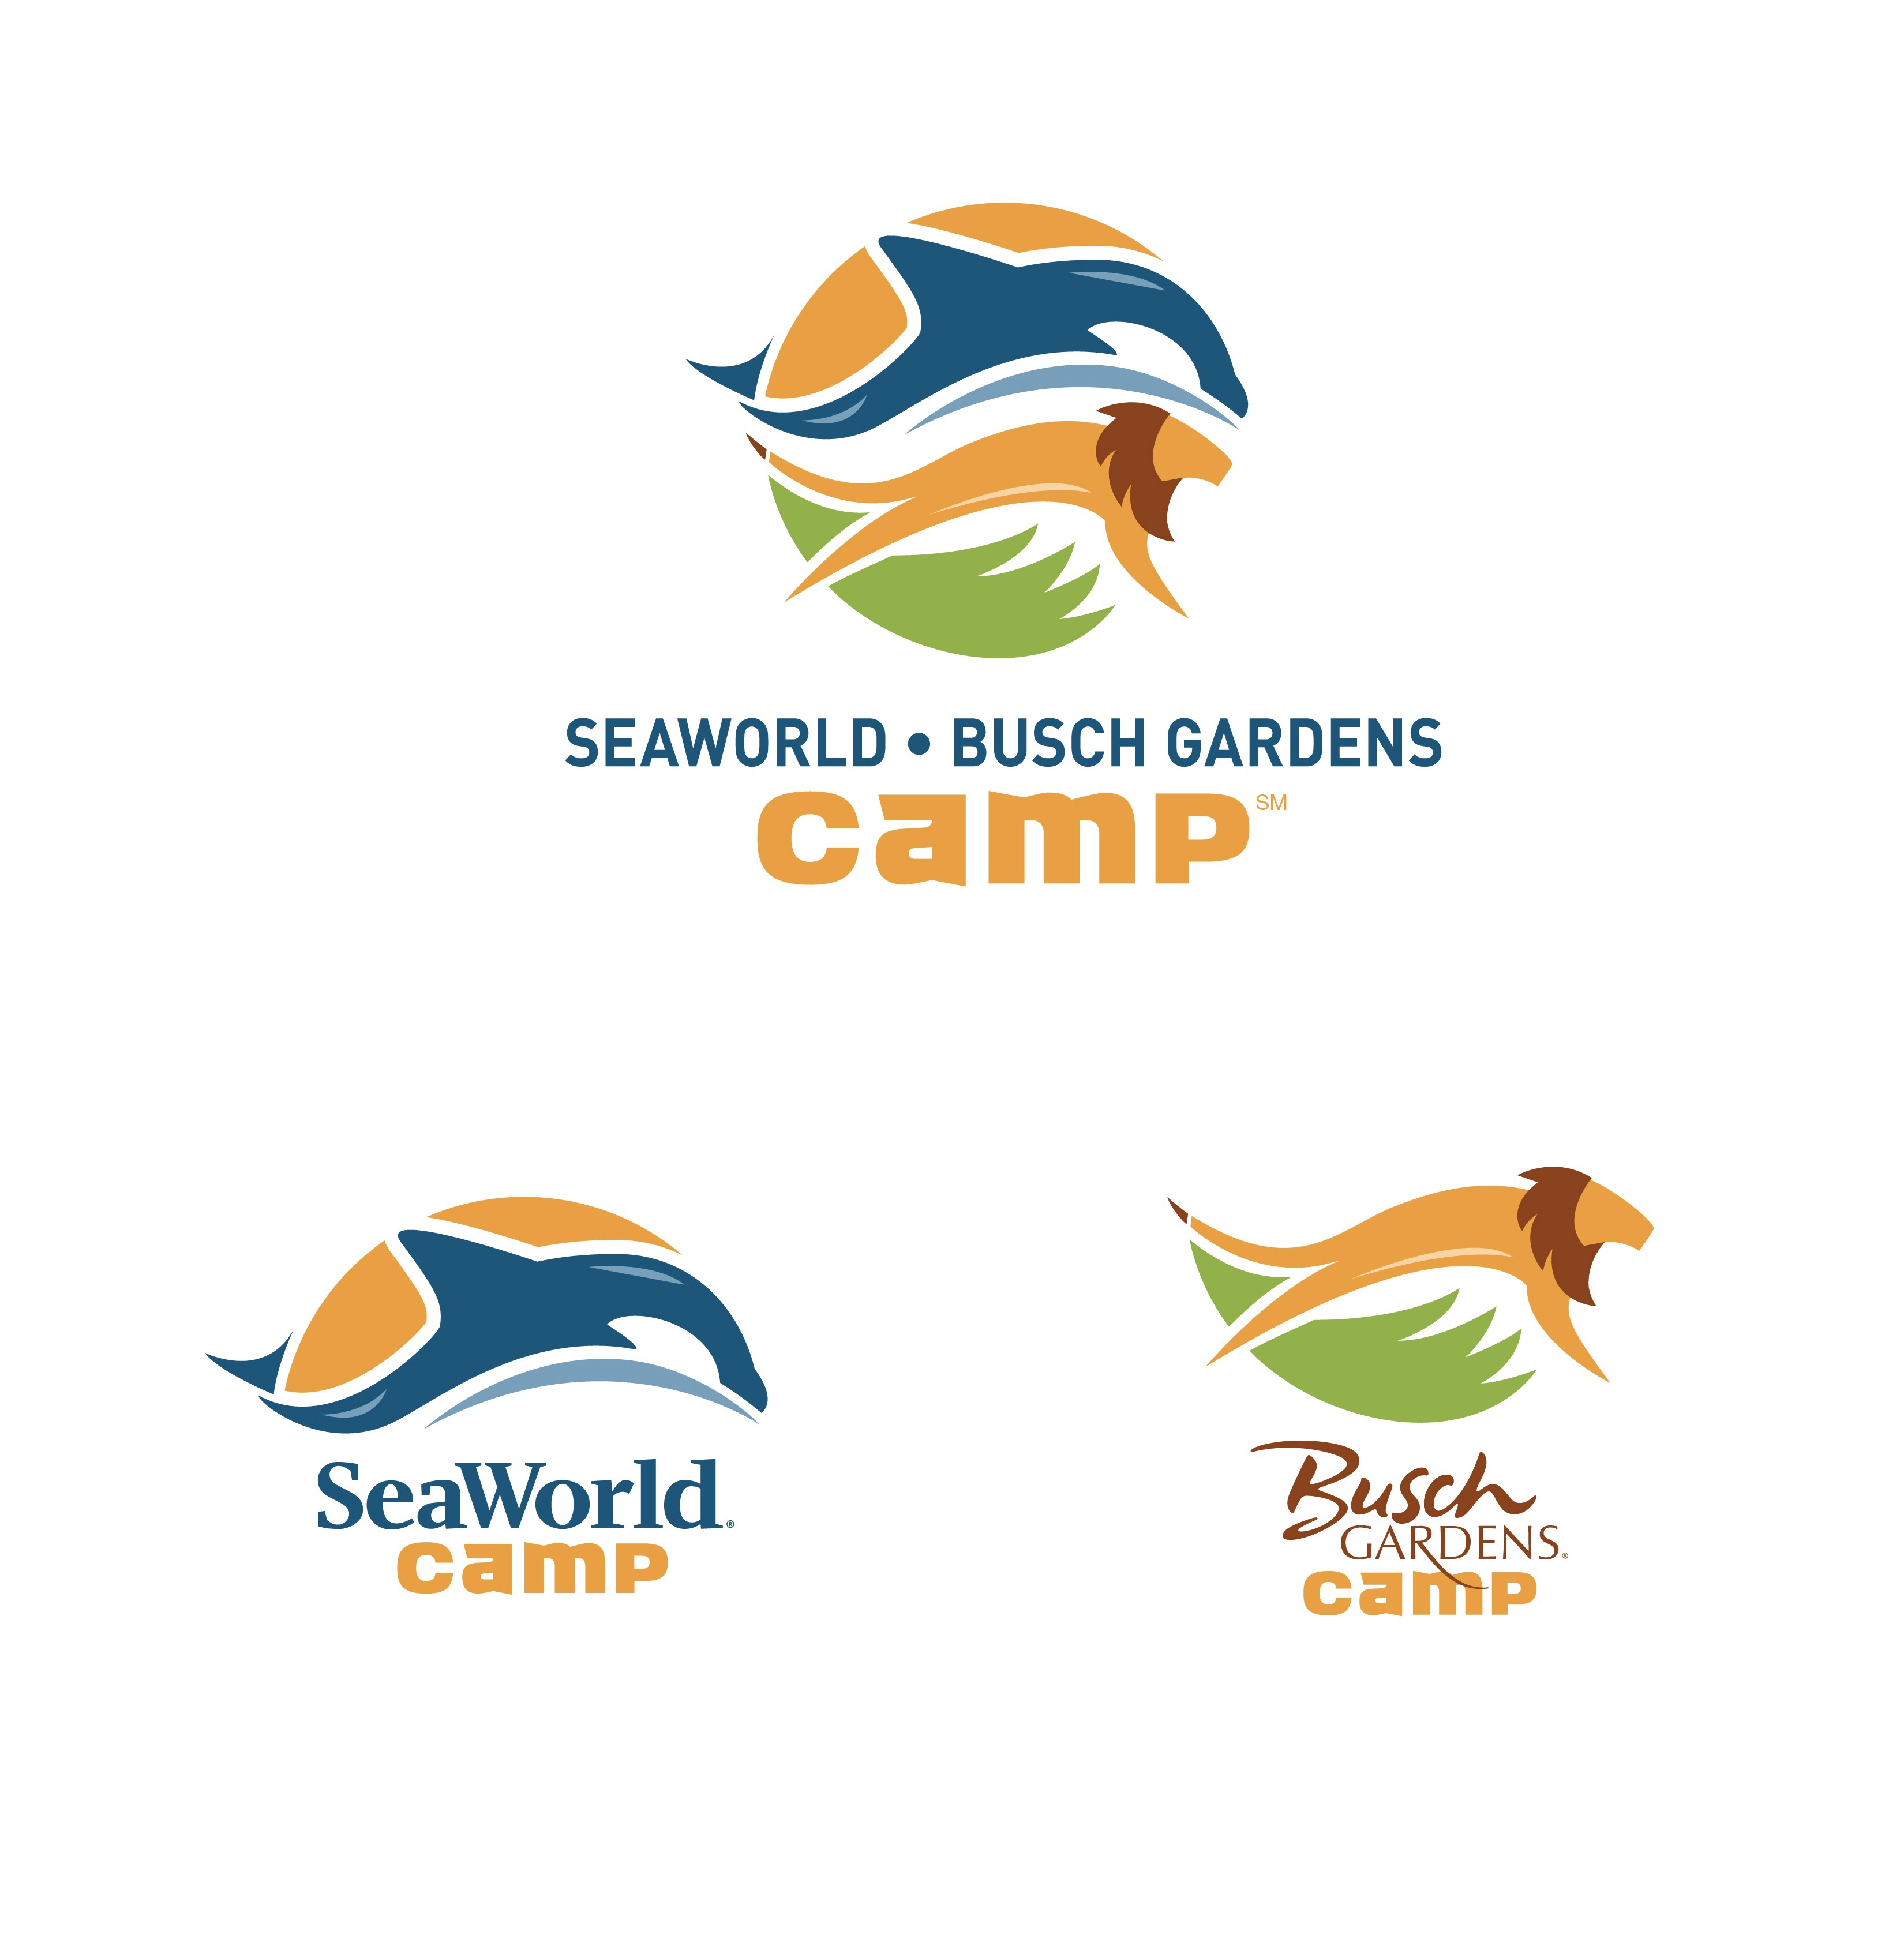 Busch Gardens SeaWorld Camp on Behance